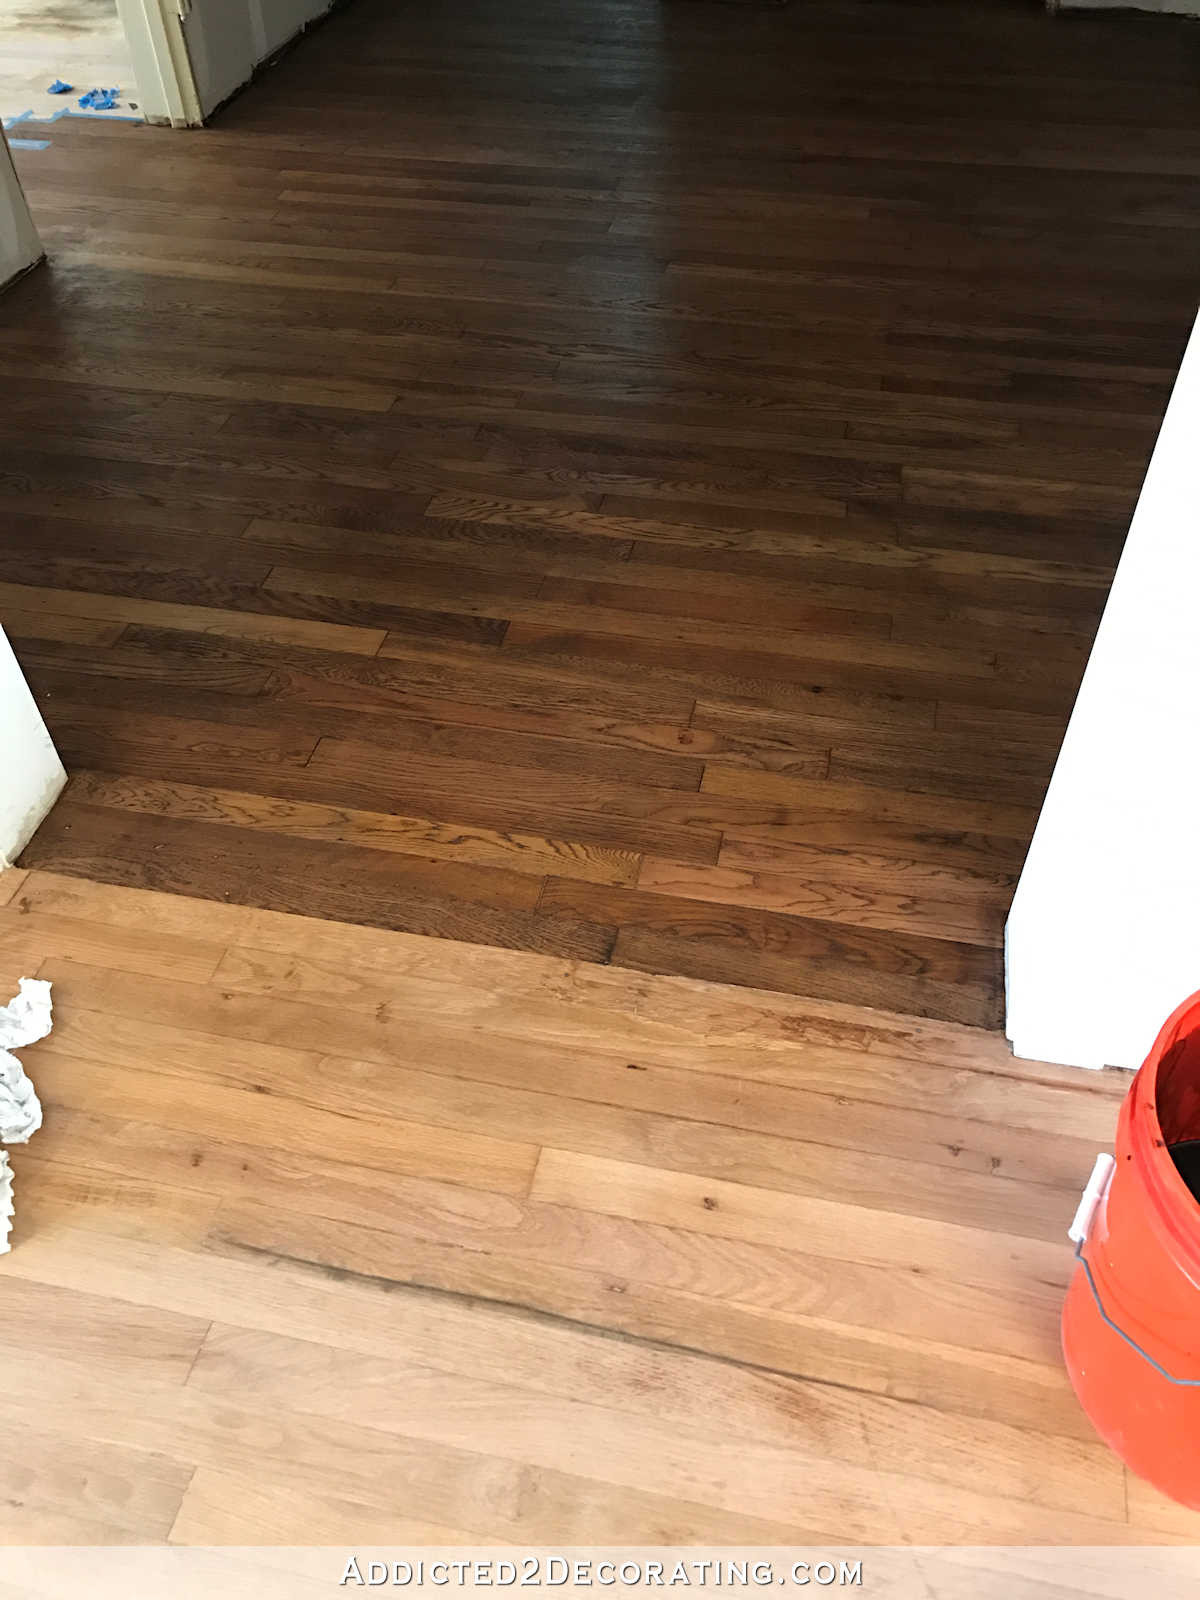 Getting Paint Off Hardwood Floors Of How to Get Paint Off Wood Floors Floor In How to Get Paint Off Wood Floors Adventures In Staining My Red Oak Hardwood Floors Products